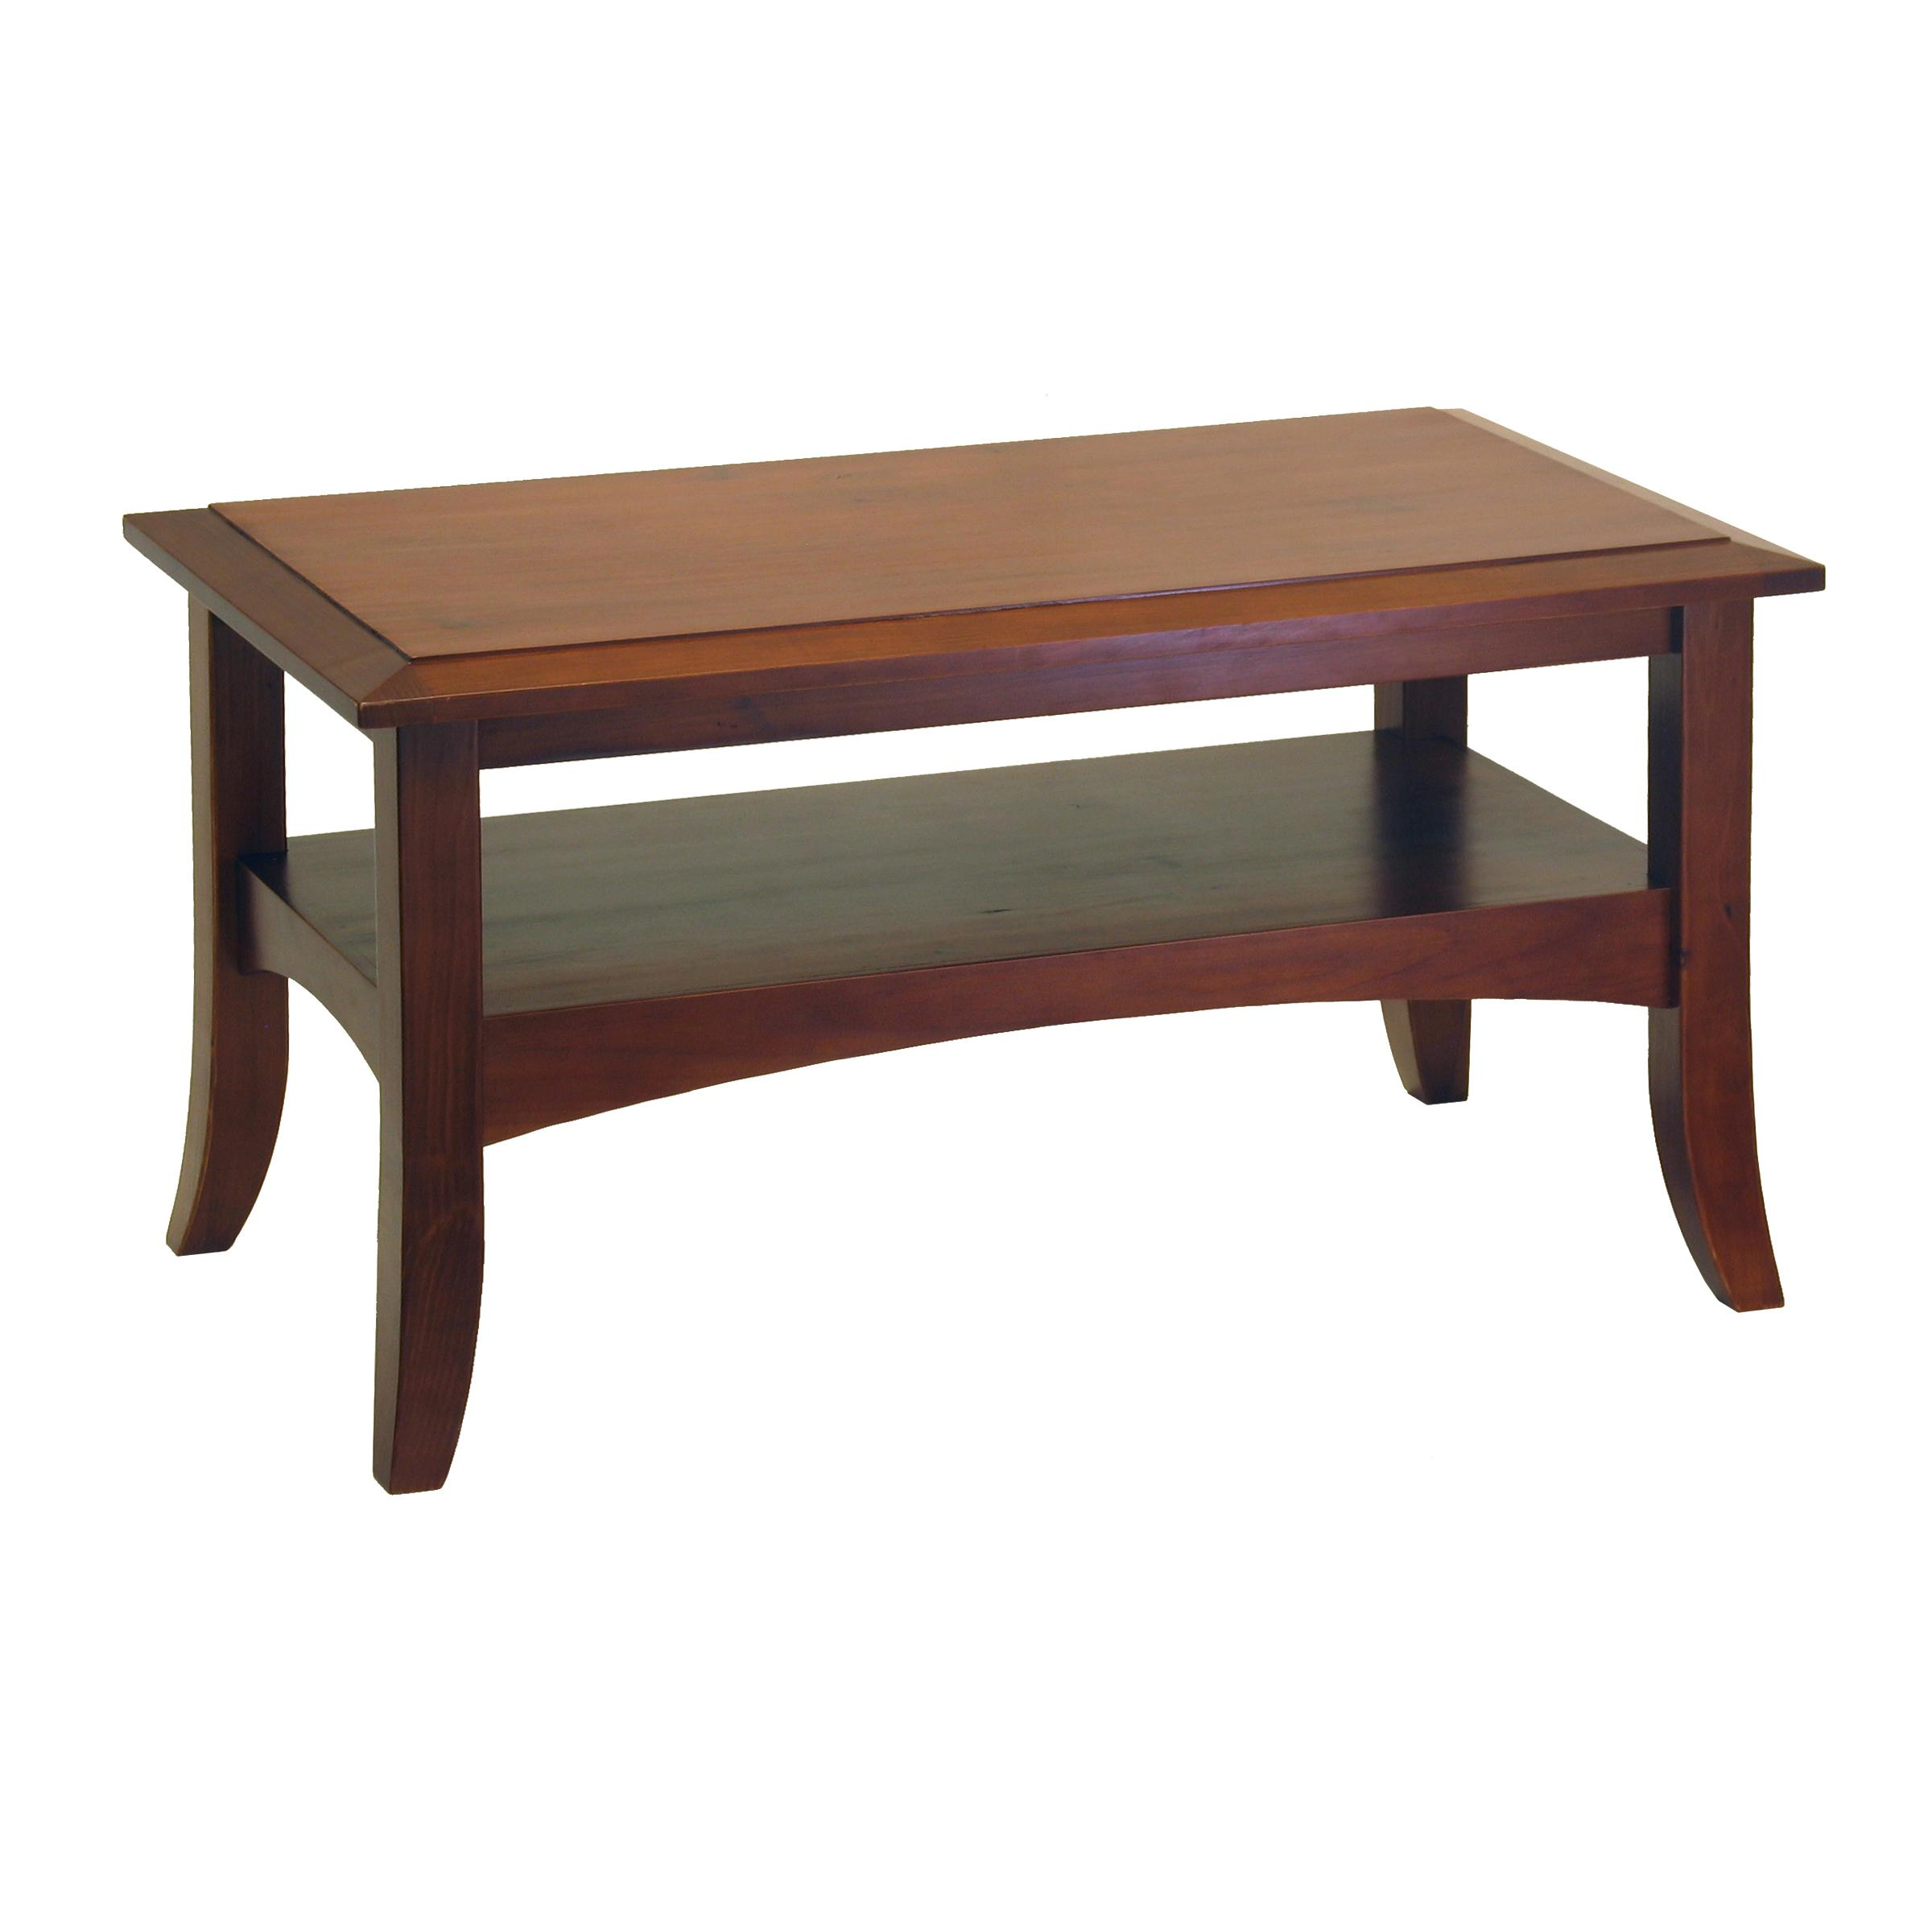 Charmant Craftsman Coffee Table